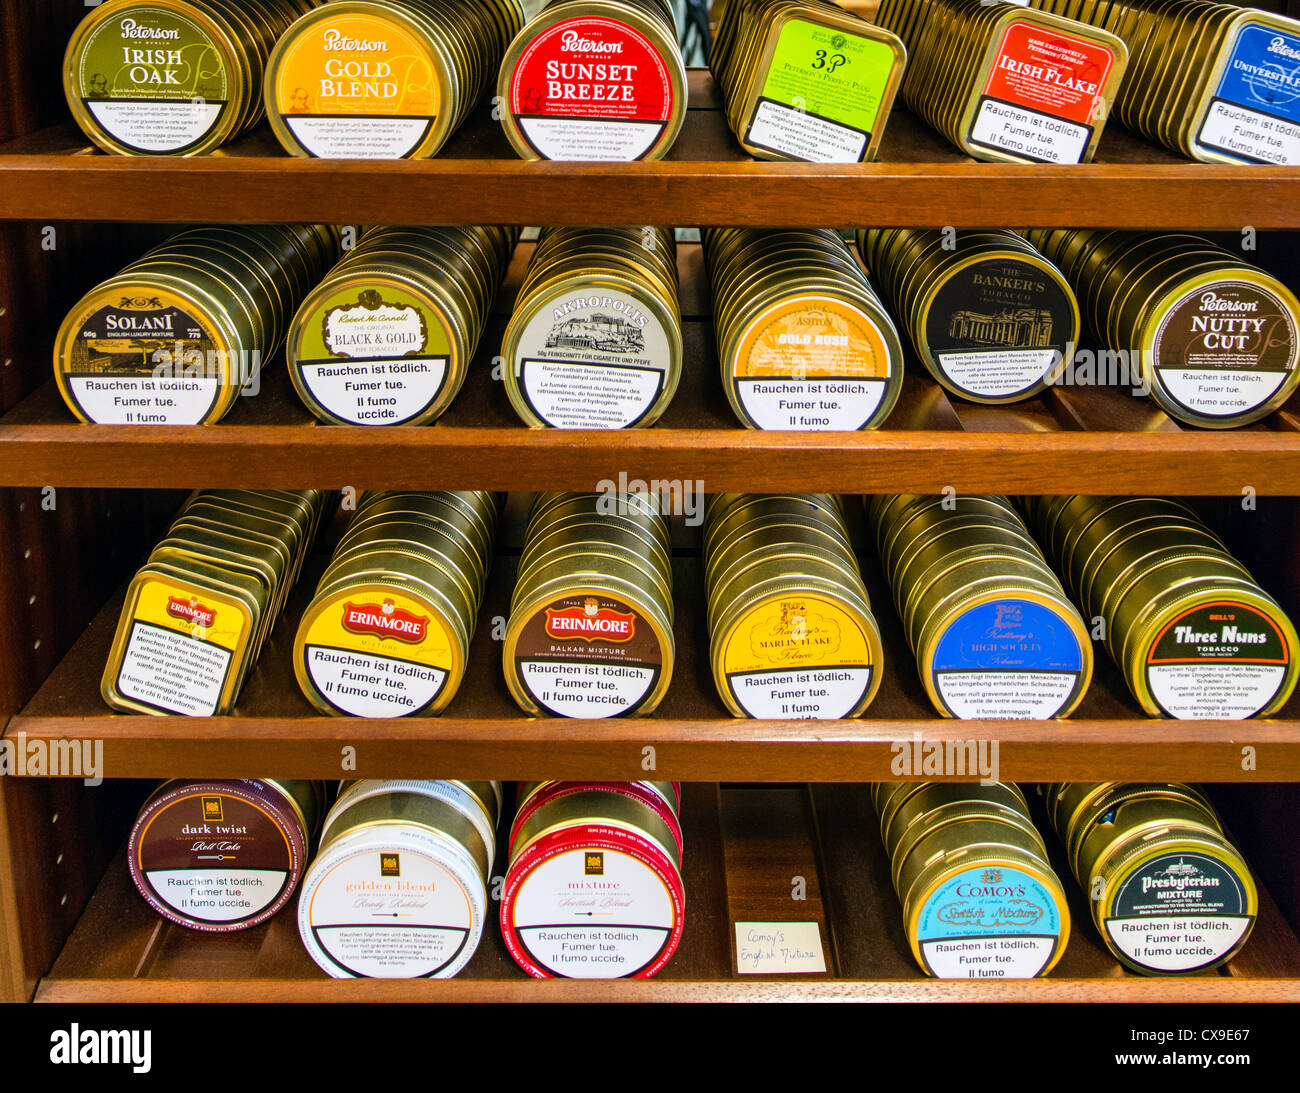 Tobacco boxes at Tobacconist shop Lausanne Switzerland Europe - Stock Image